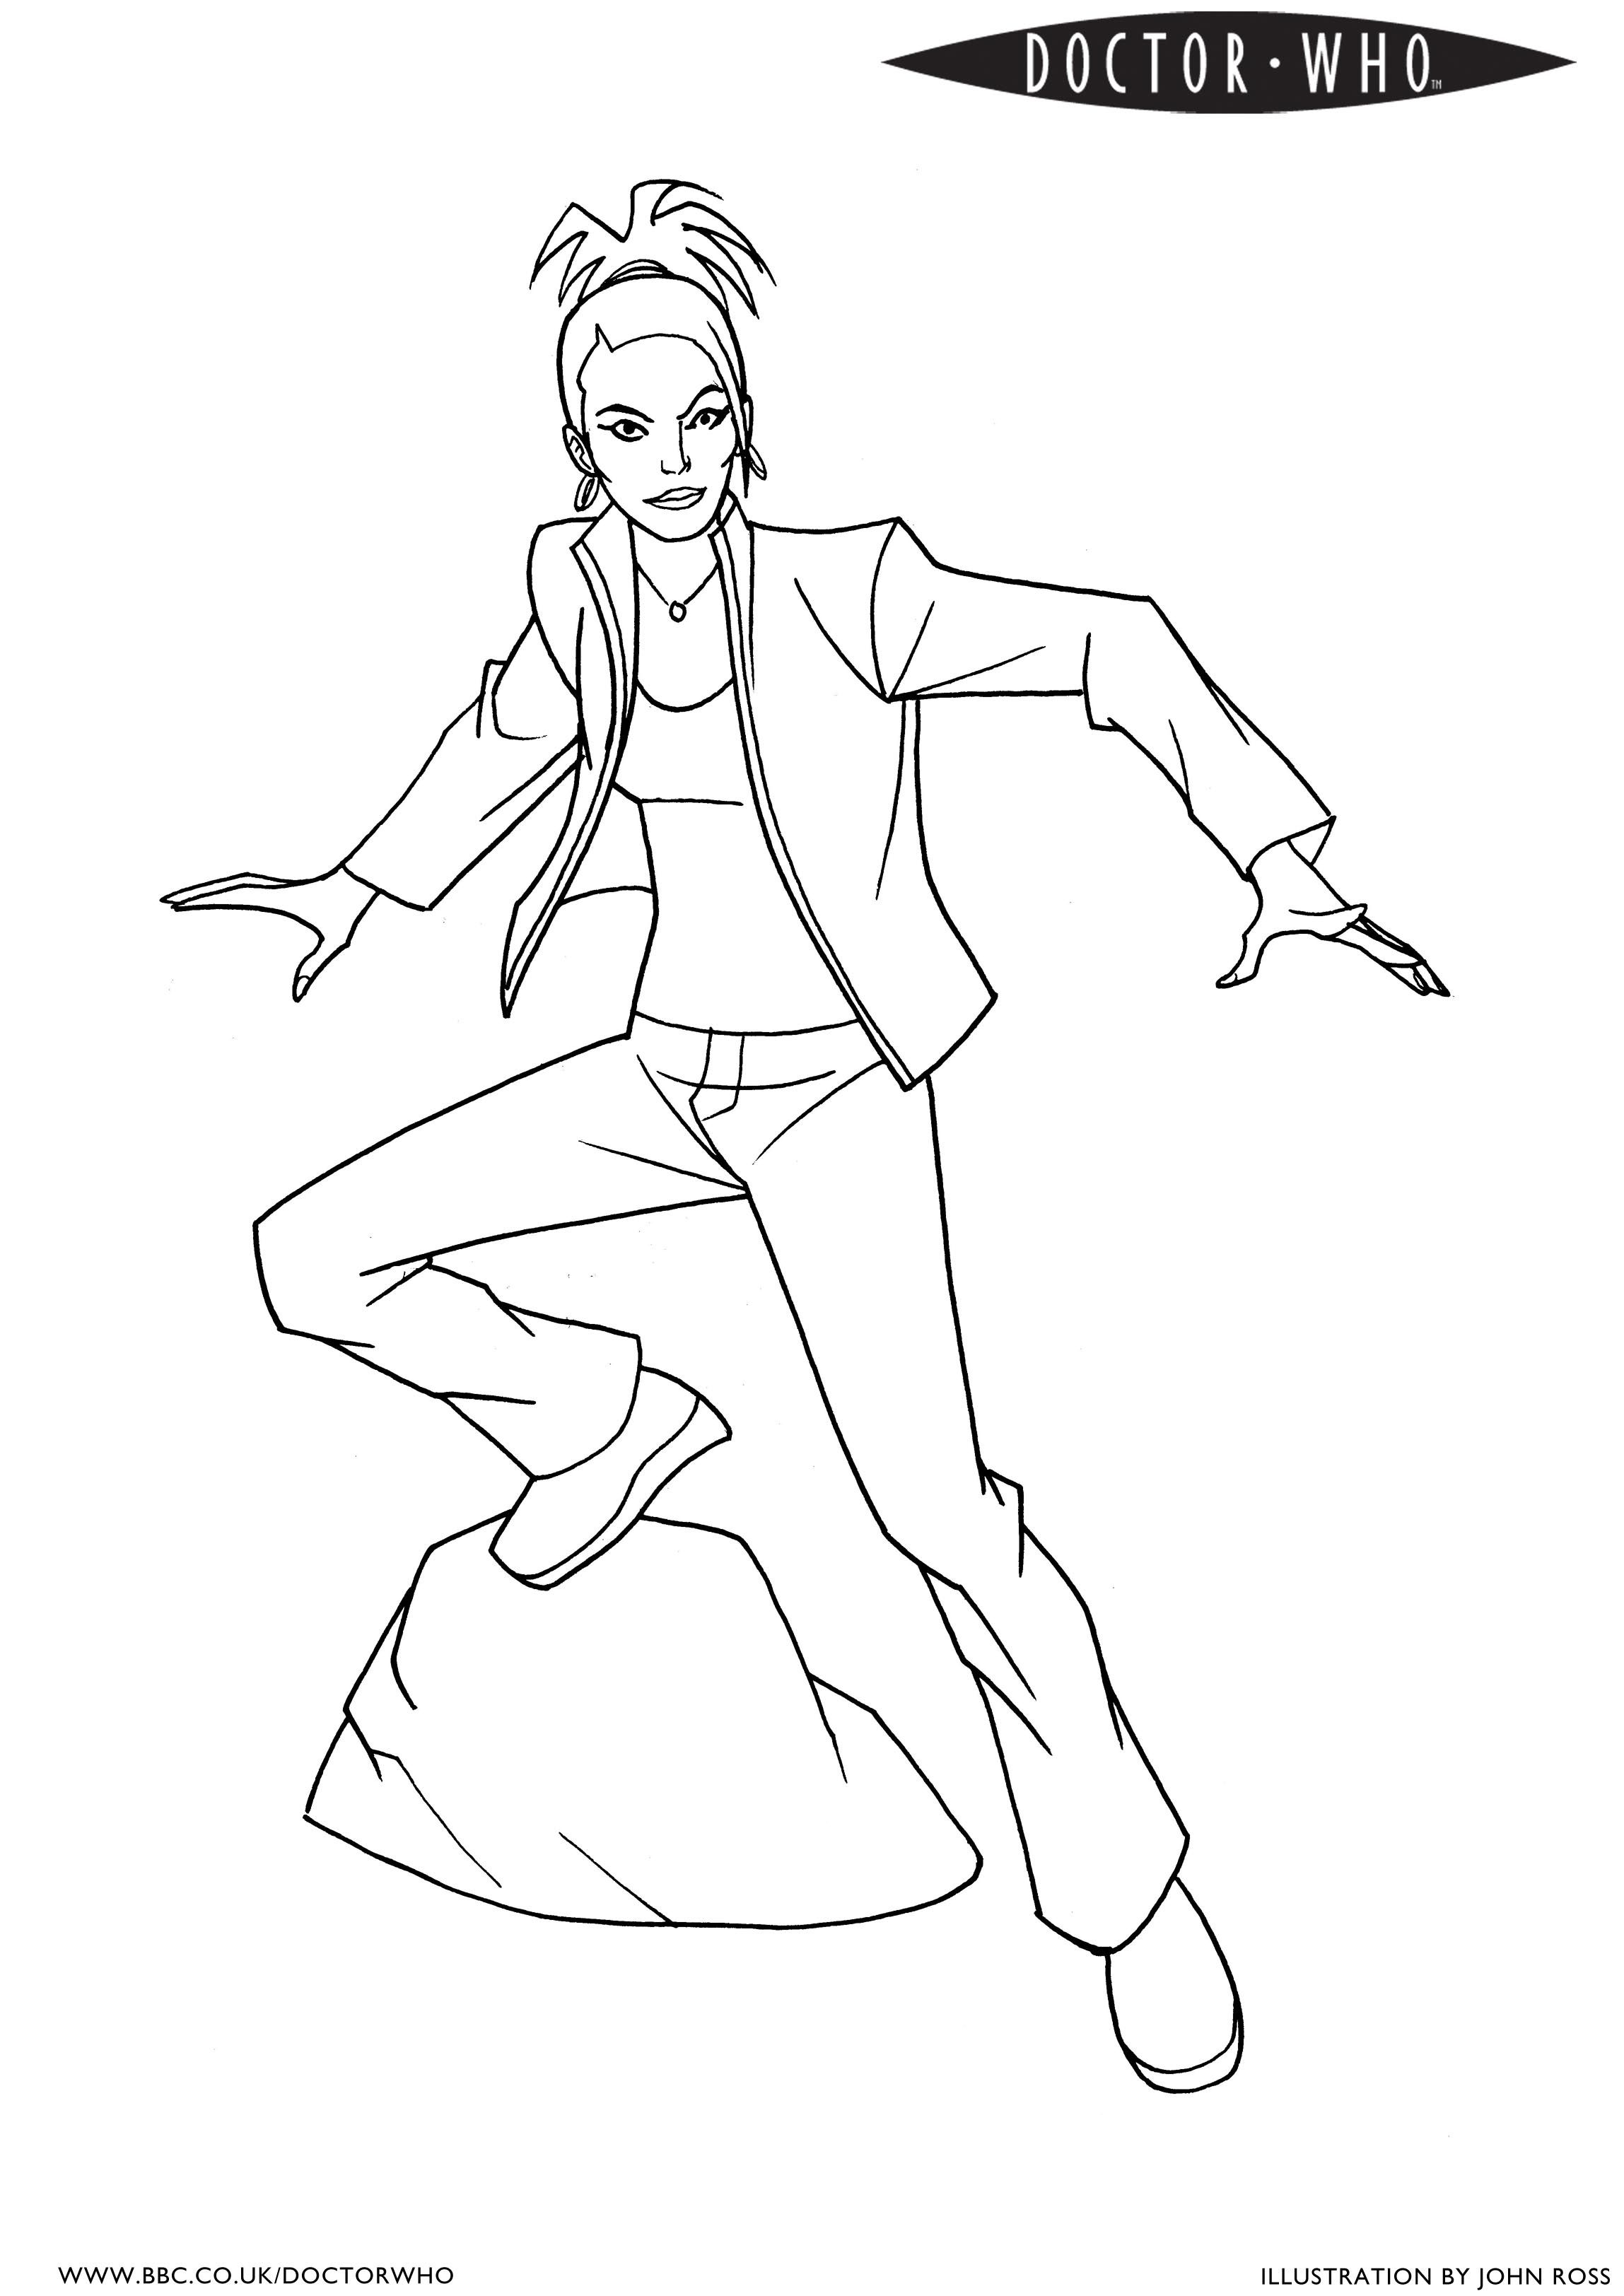 Coloring pages for doctors - Bbc Doctor Who Coloring Page 4 Martha